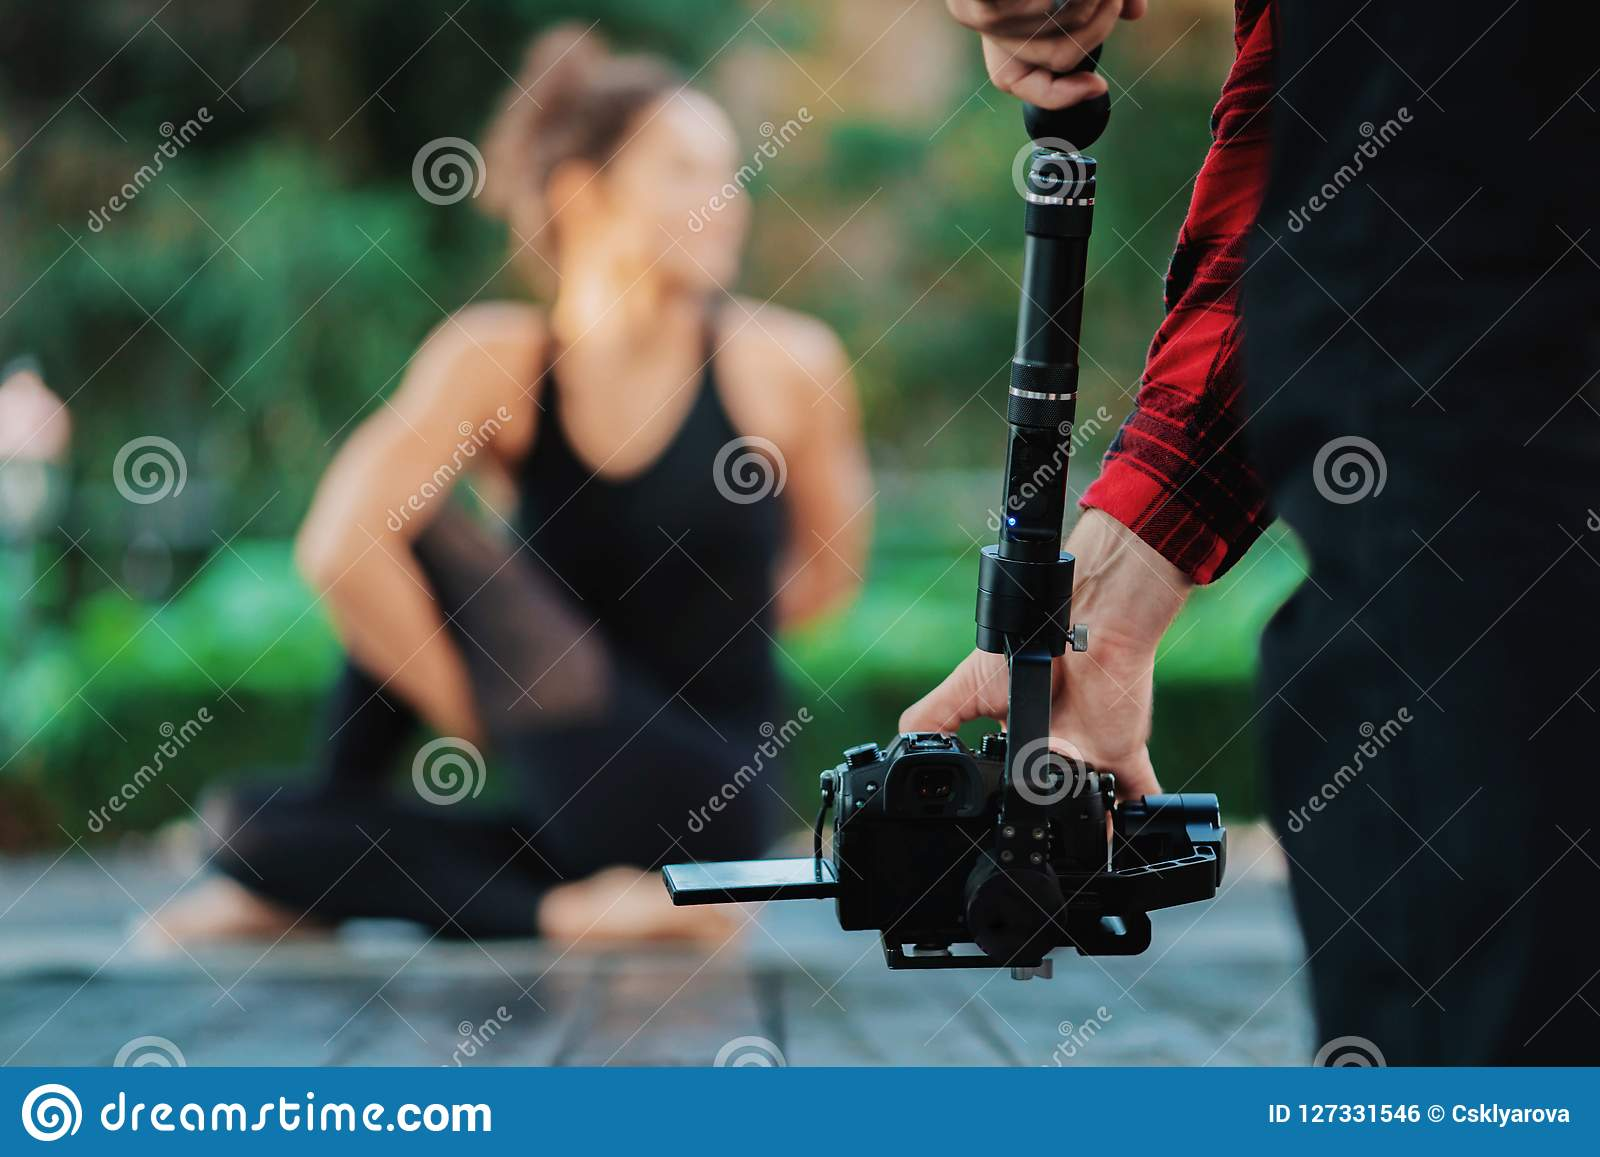 Video camera man operator working with professional equipment,filming recording. Cameraman shooting video of yoga